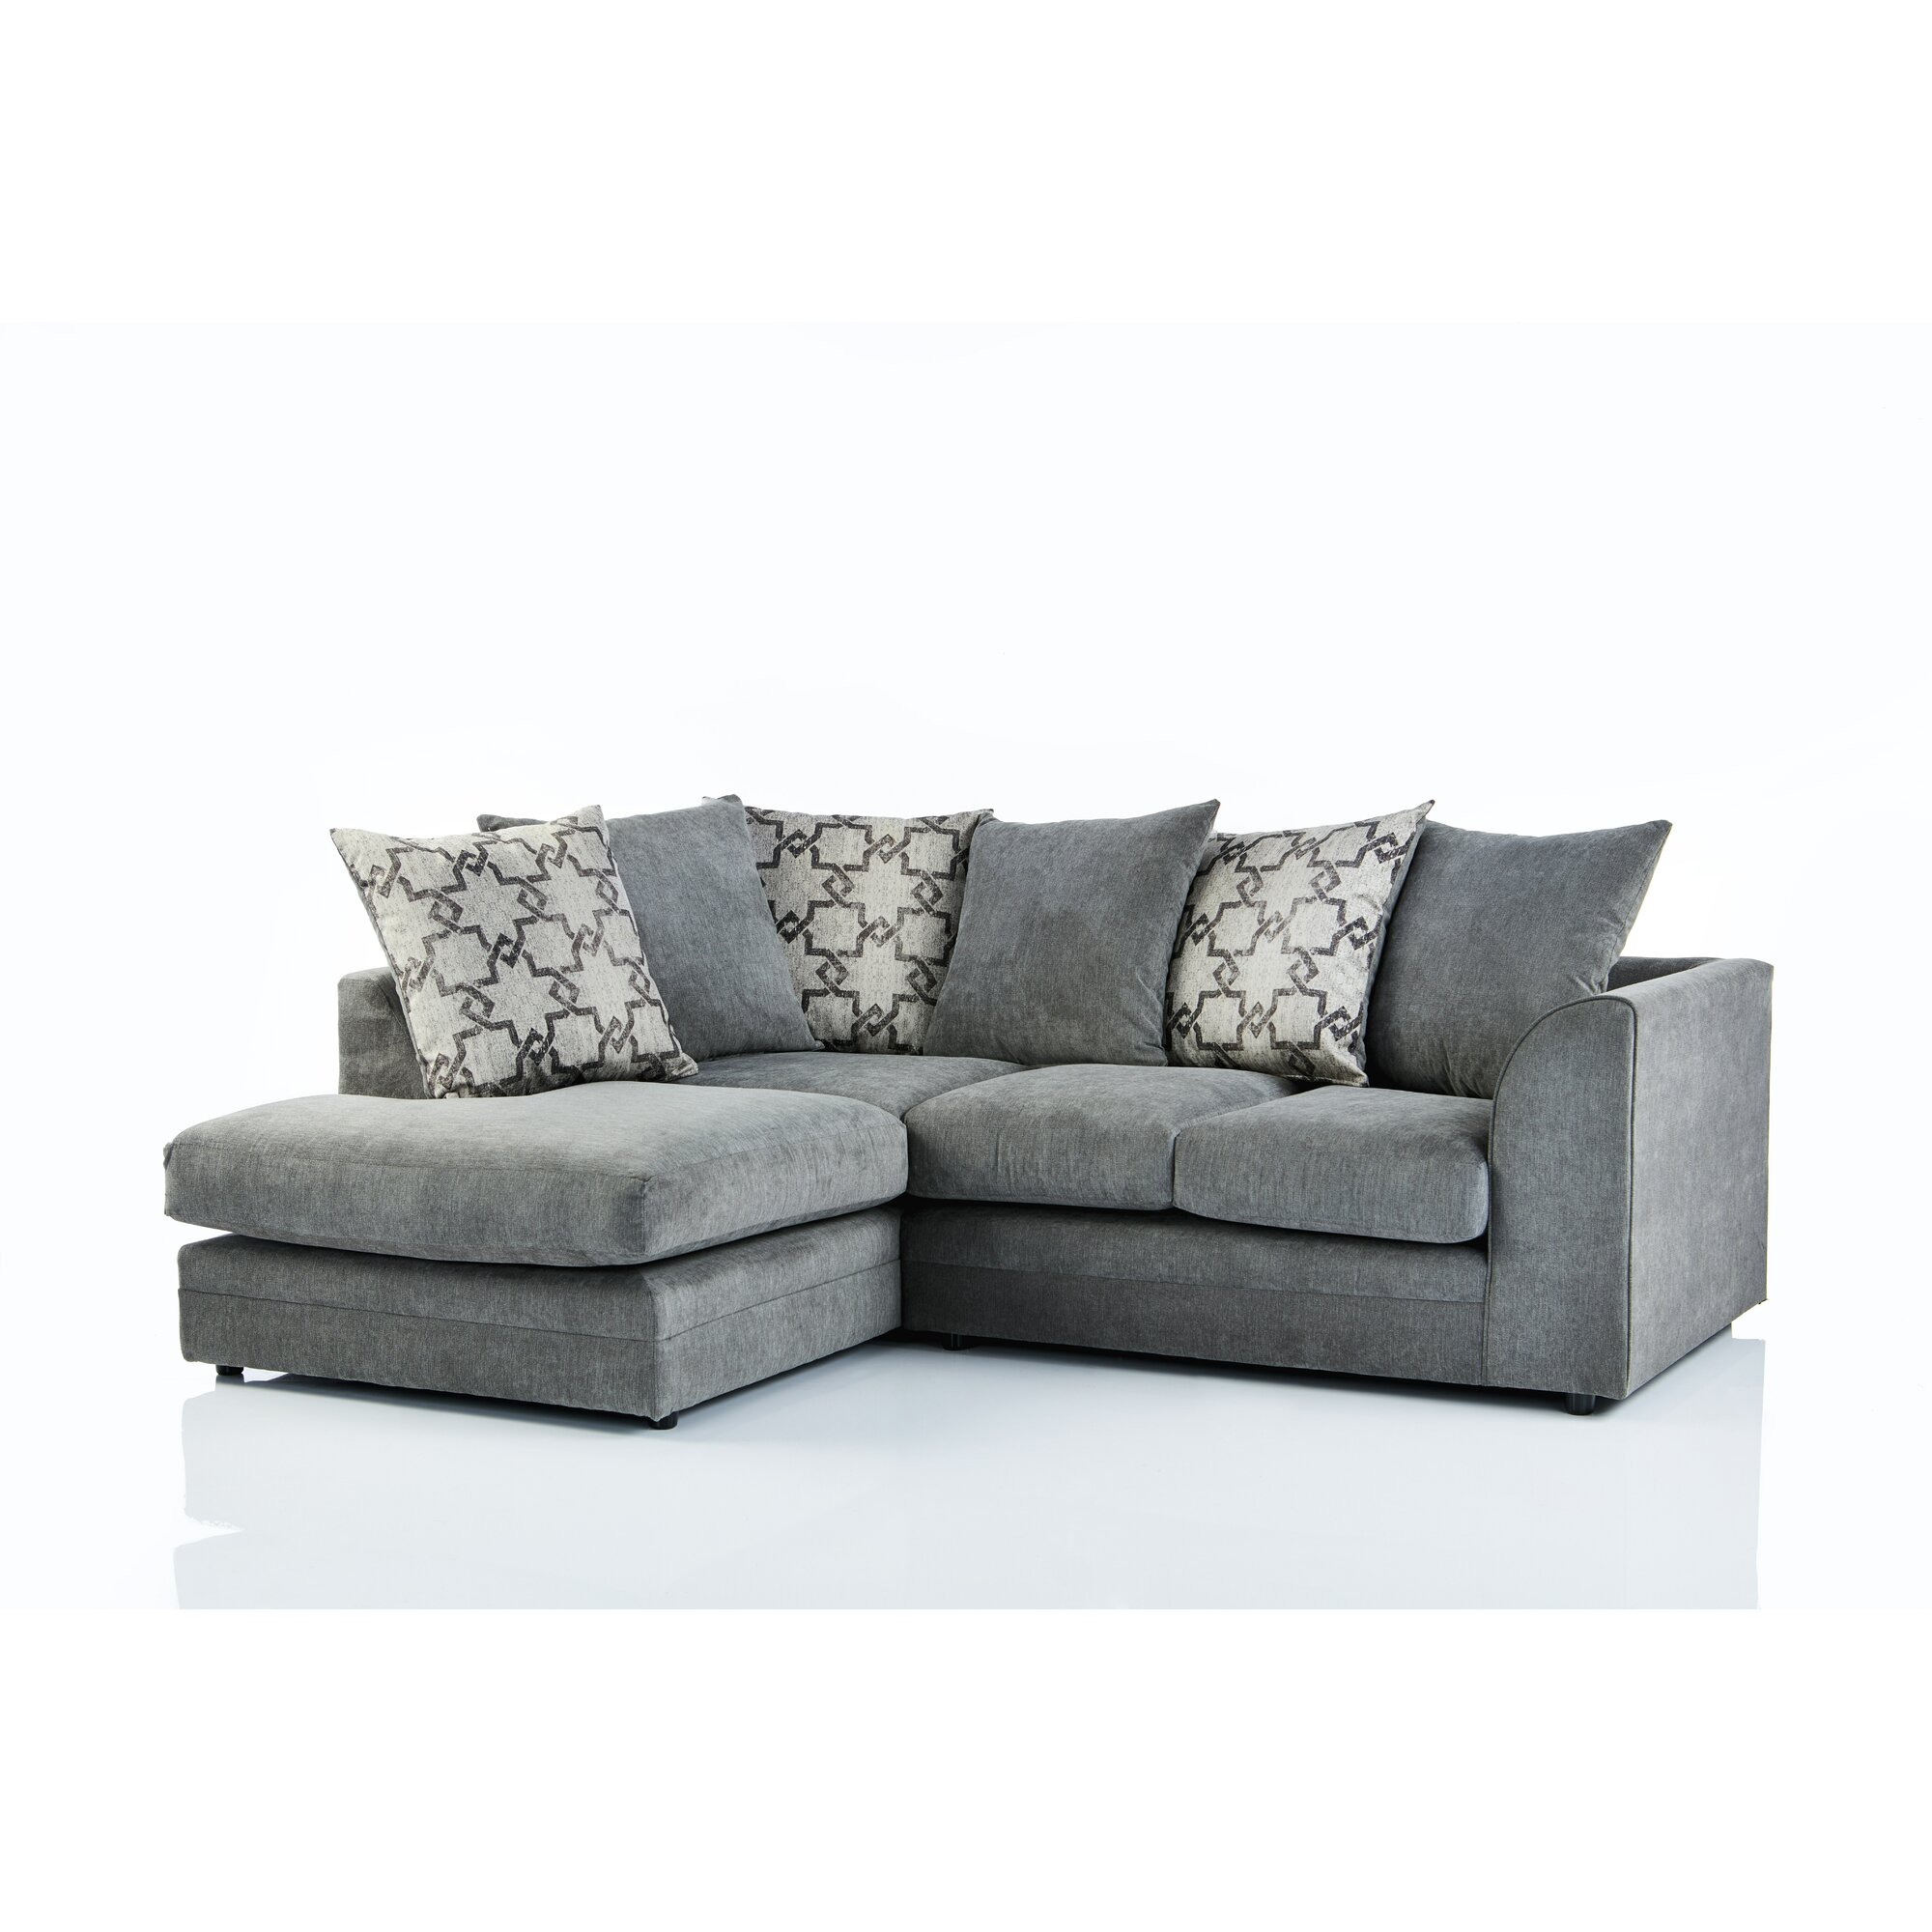 Schön Three Posts Chicago Graceland Corner Sofa U0026 Reviews | Wayfair.co.uk, Möbel